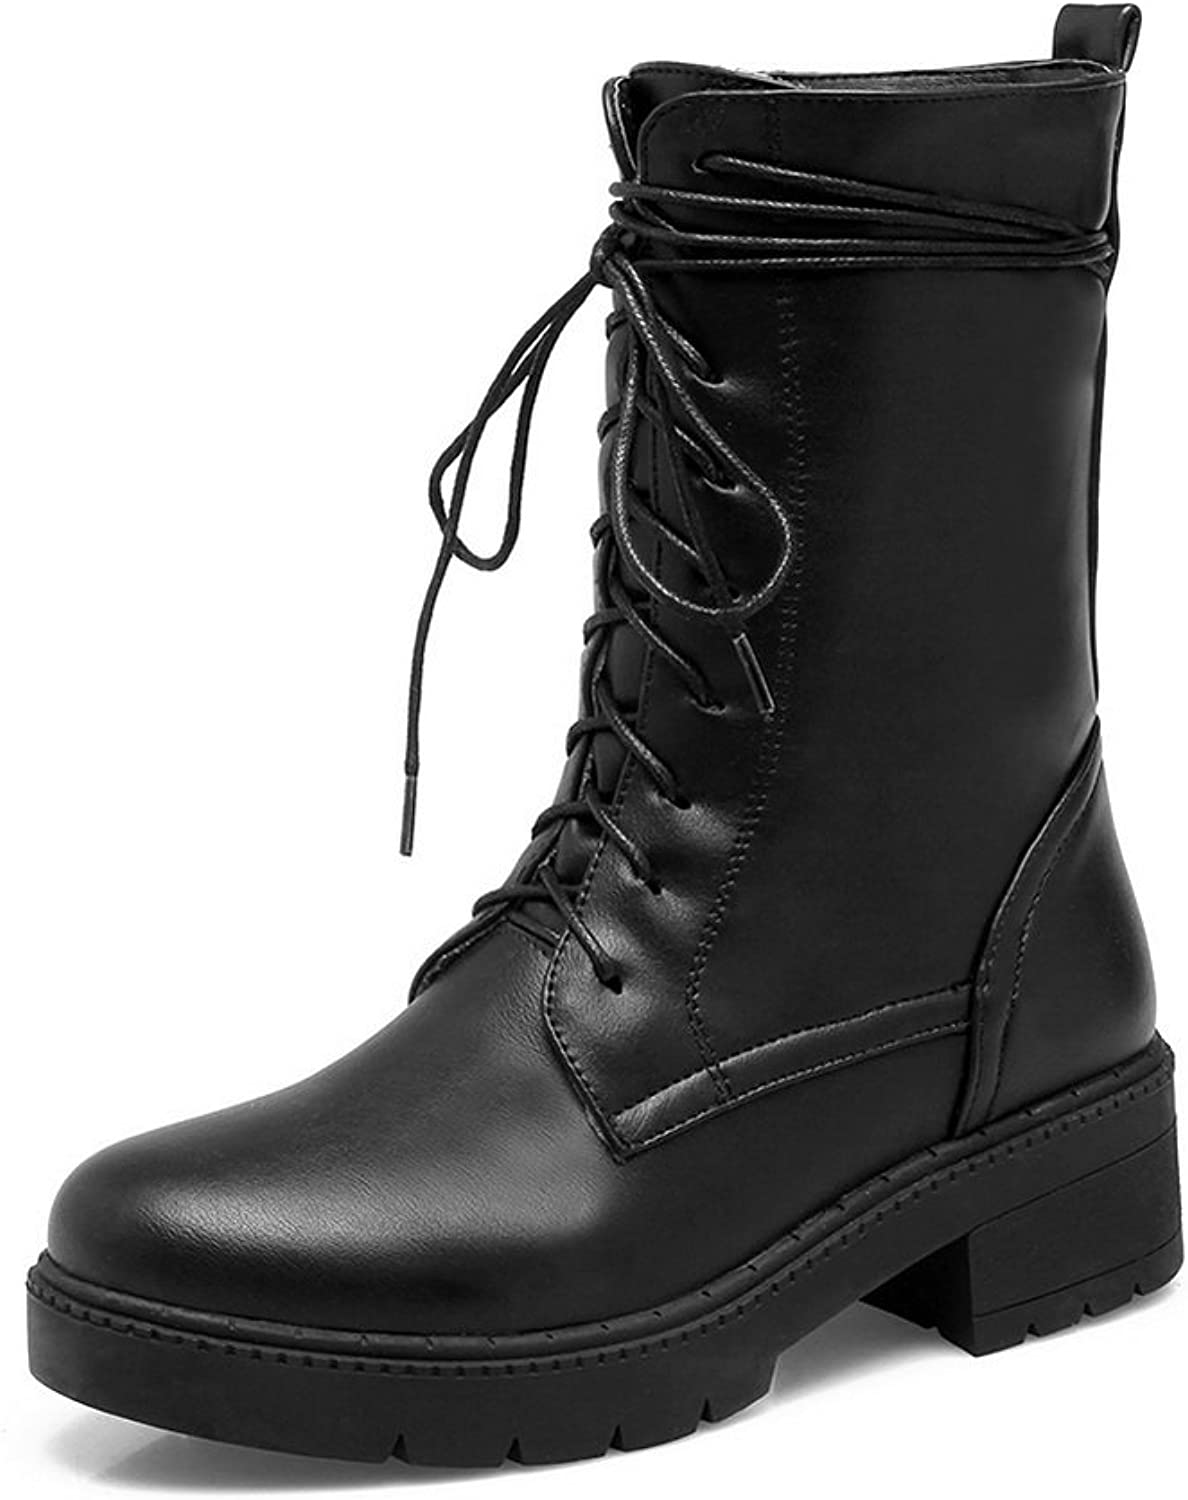 AandN Womens Boots Closed-Toe Lace-Up Adjustable-Strap Low-Heel Solid Urethane Novelty All-Weather Bootie Urethane Boots DKU01914